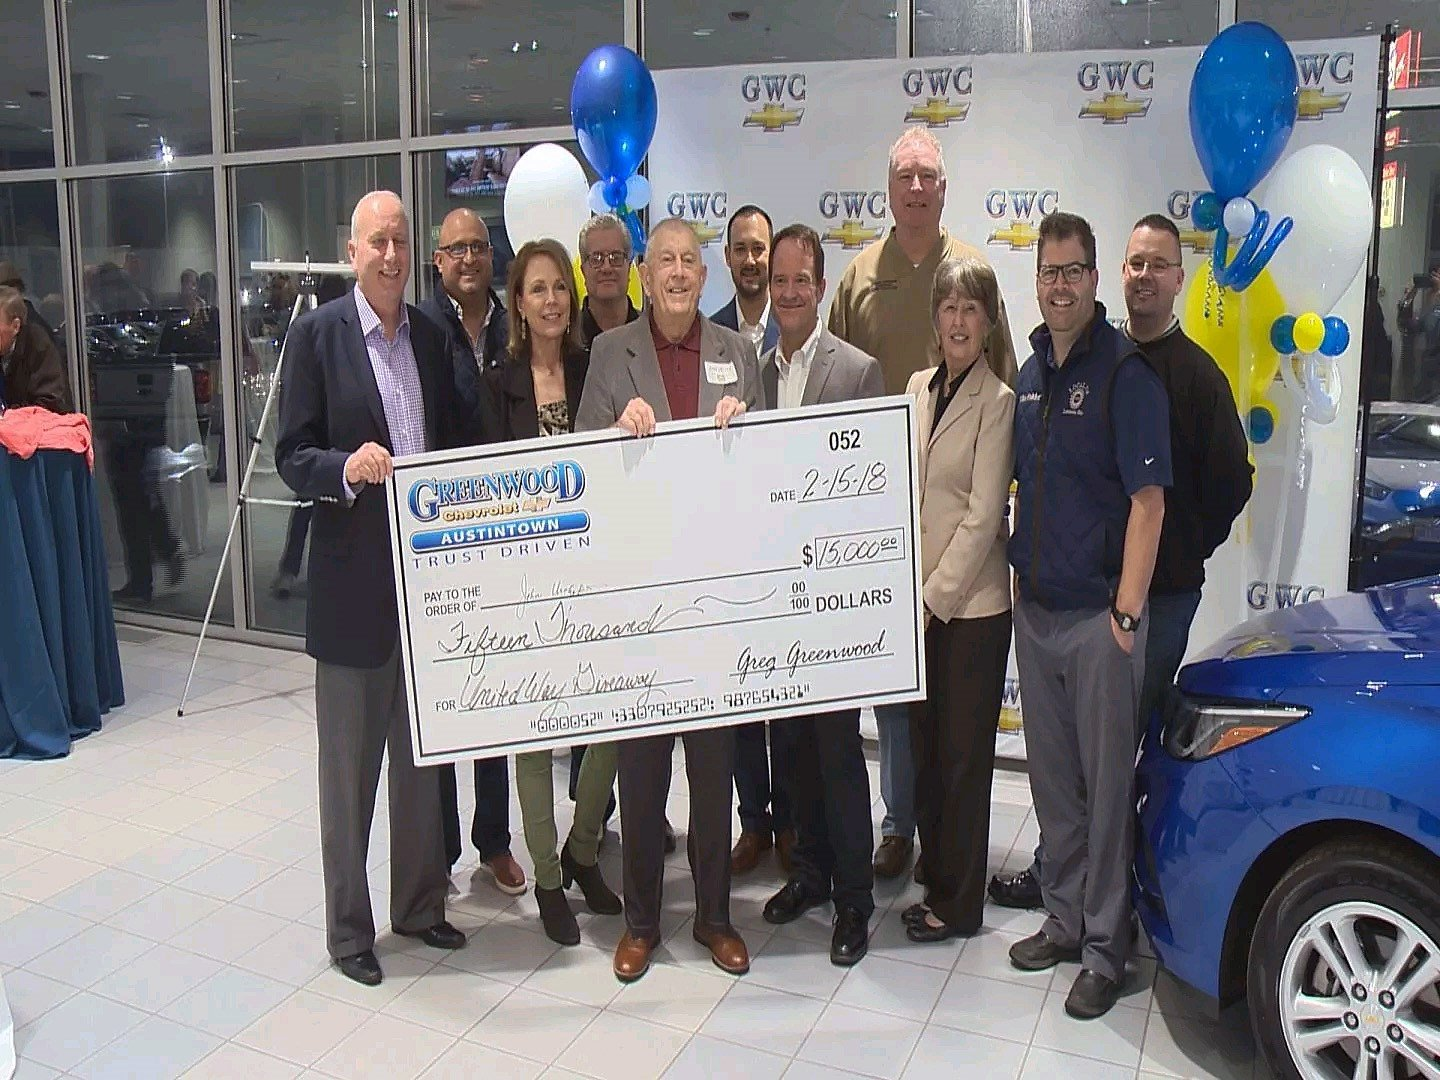 Cortland Man Wins Greenwood Chevrolet Cruze Or Cash Giveaway   WFMJ.com  News Weather Sports For Youngstown Warren Ohio